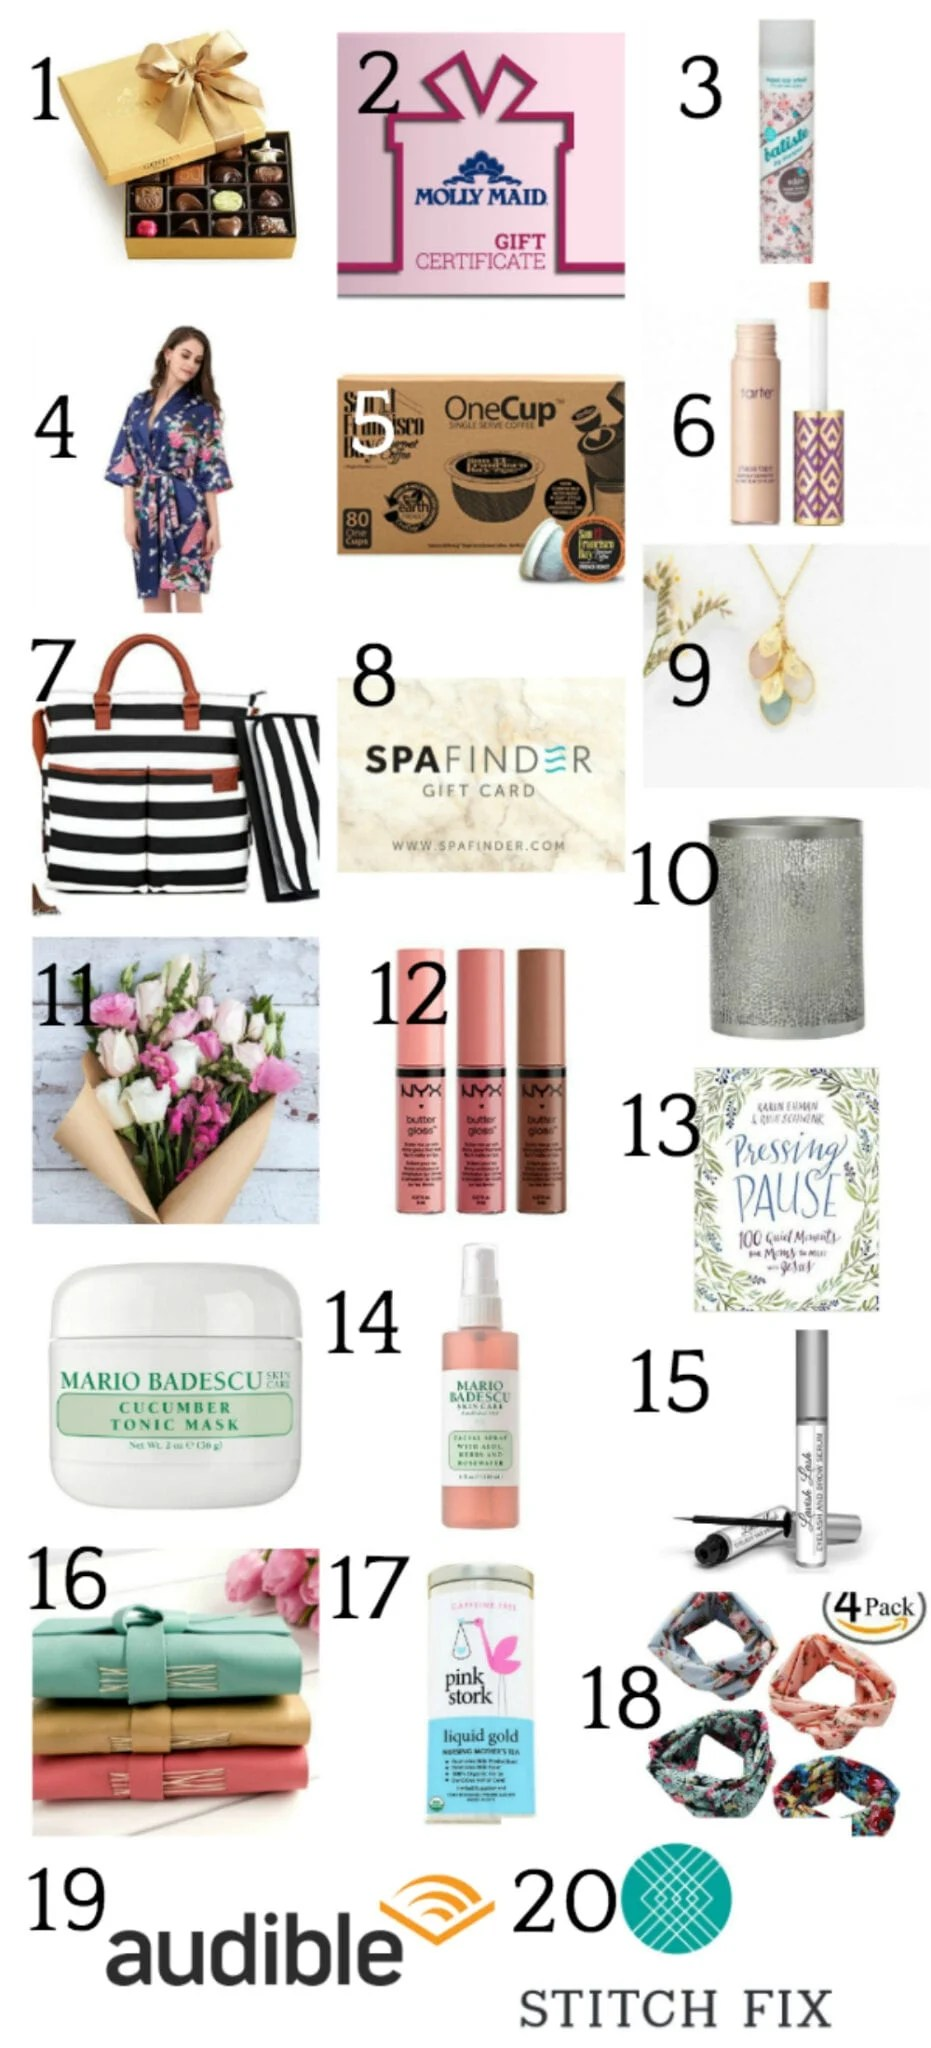 A gift guide with 20 gift ideas for new moms on Mother's Day or any day you feel like pampering her. #mothersdaygiftguide #mothersdaygift #mothersdaygiftideas #momgiftideas #momgiftguide #newmom #newmomgiftguide #newmomgiftideas #postpartumgiftideas #postpartumgiftguide